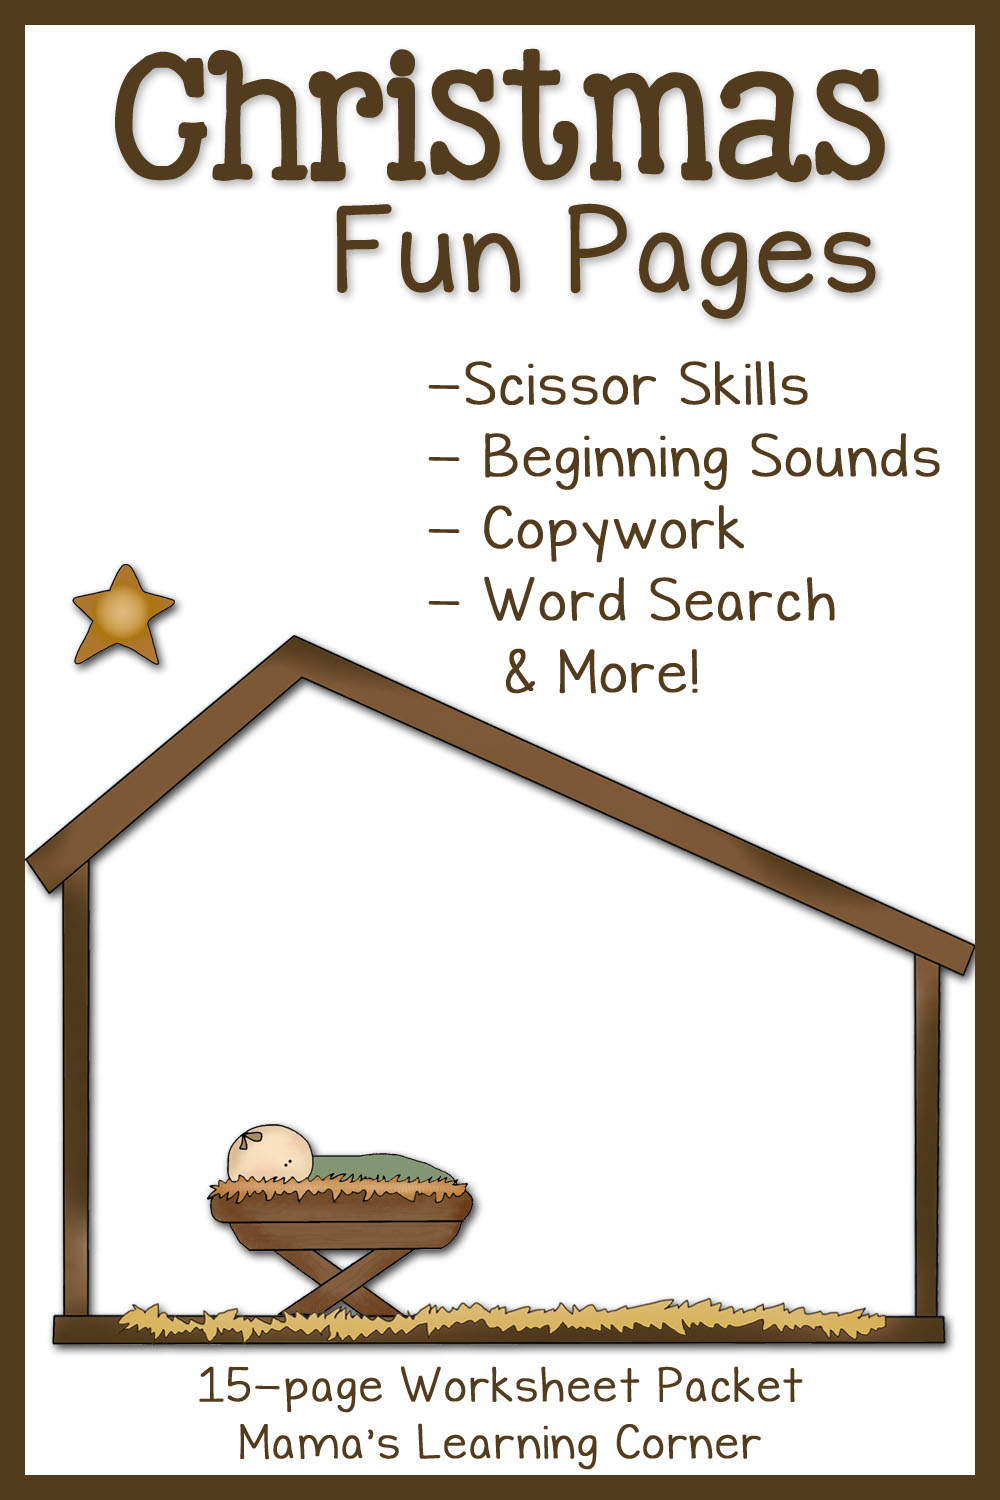 Christmas Fun Pages: Free 15-page Worksheet Set - Mamas Learning Corner